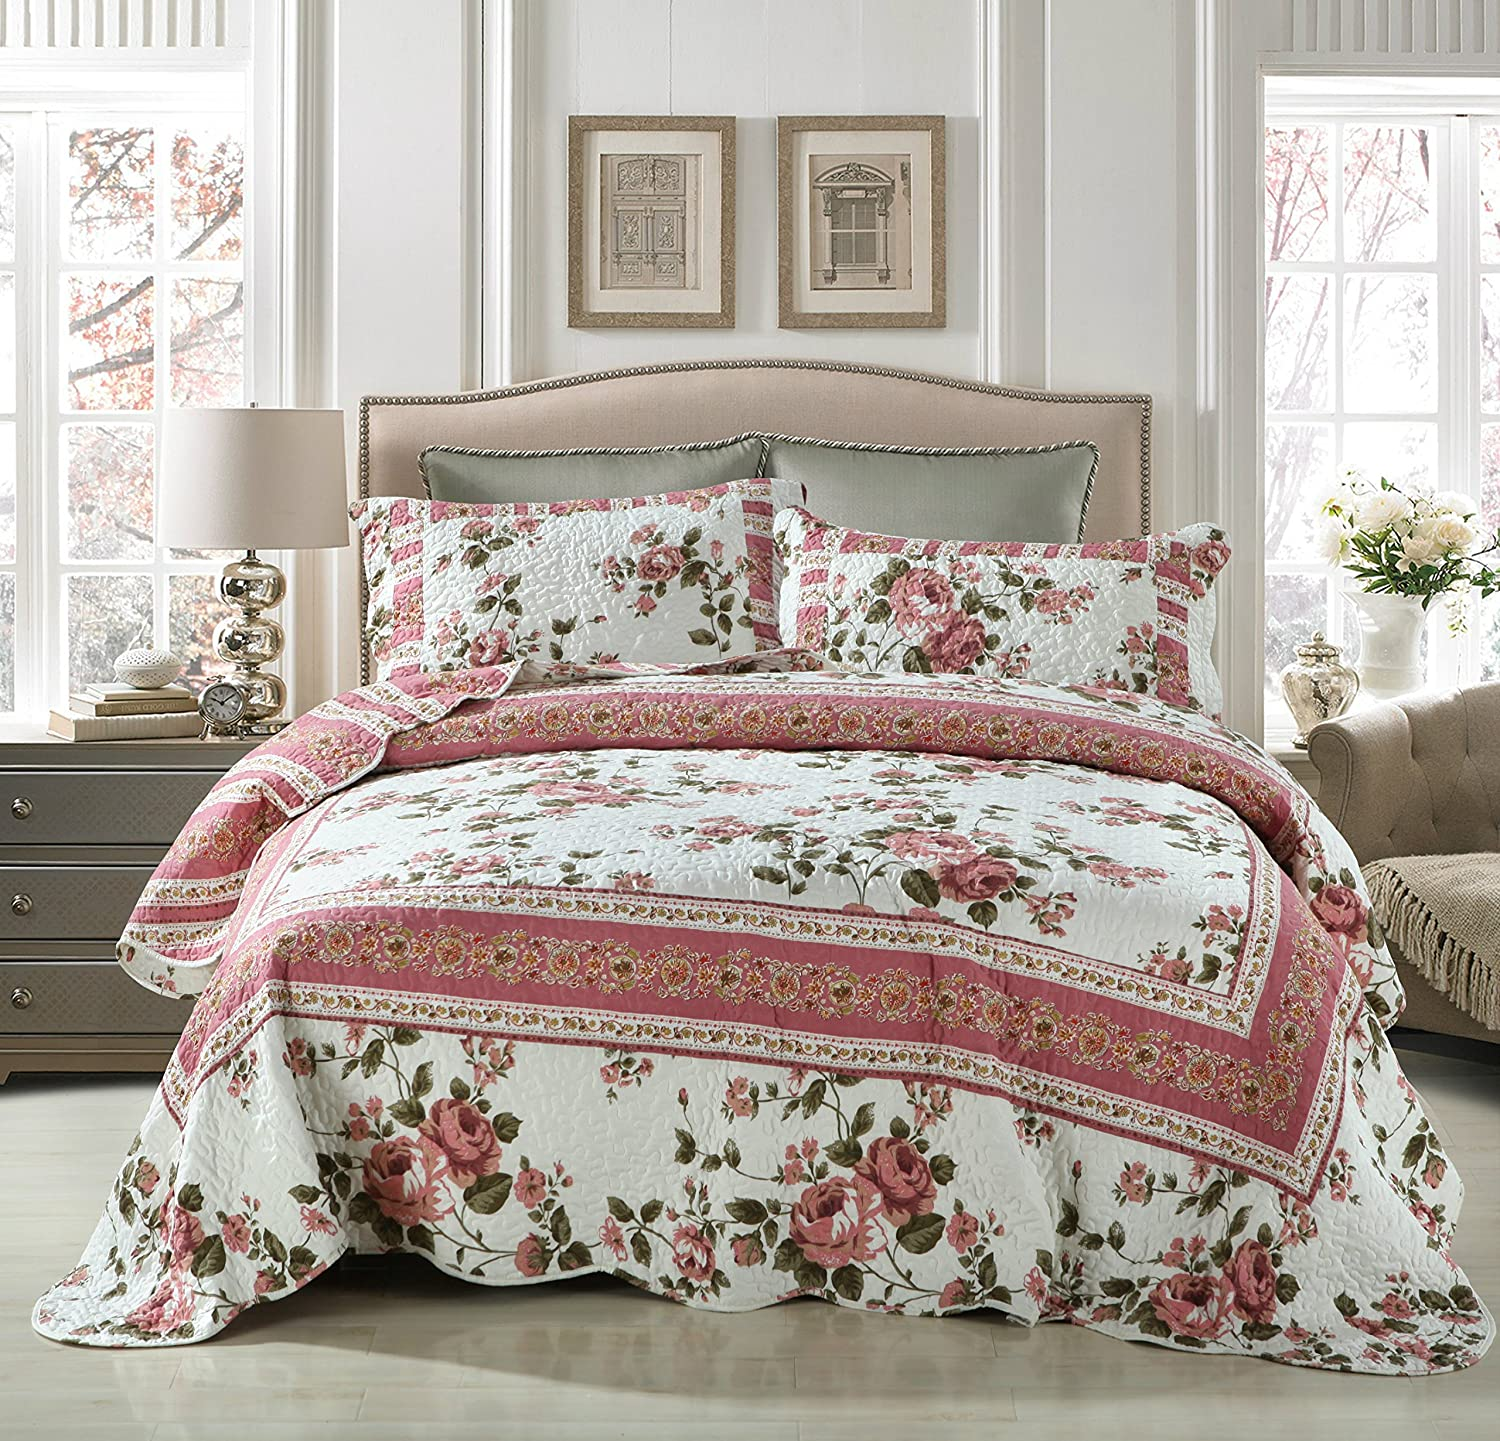 DaDa Bedding Cottage Roses Reversible Patchwork Quilted Bedspread Set